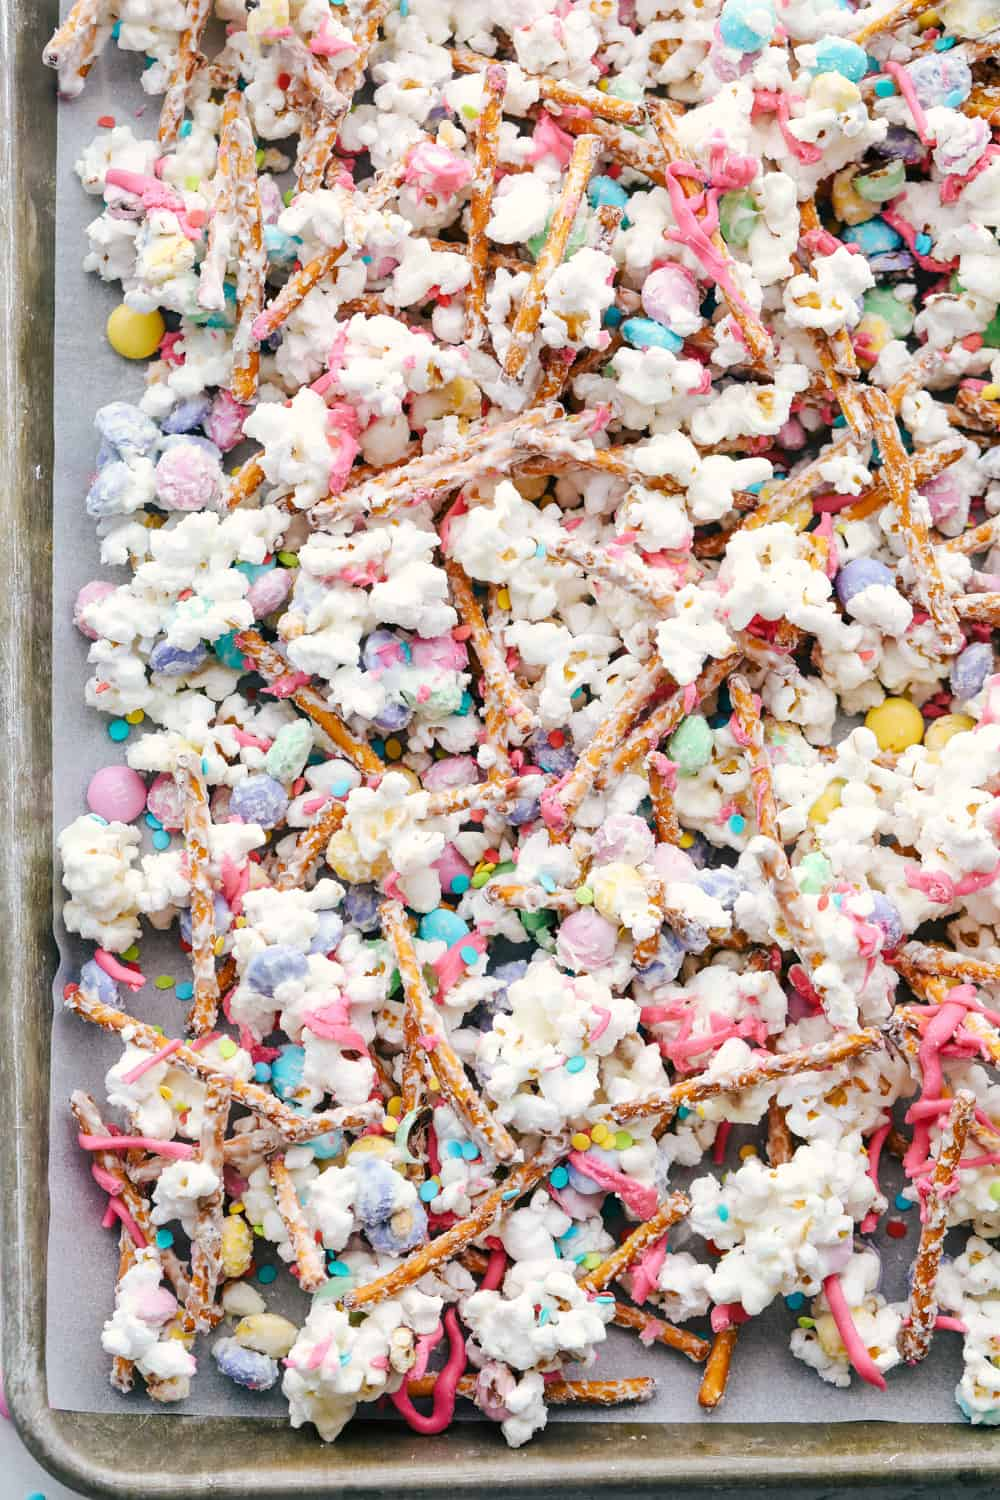 A sheet pan with colorful bunny bait cooling.